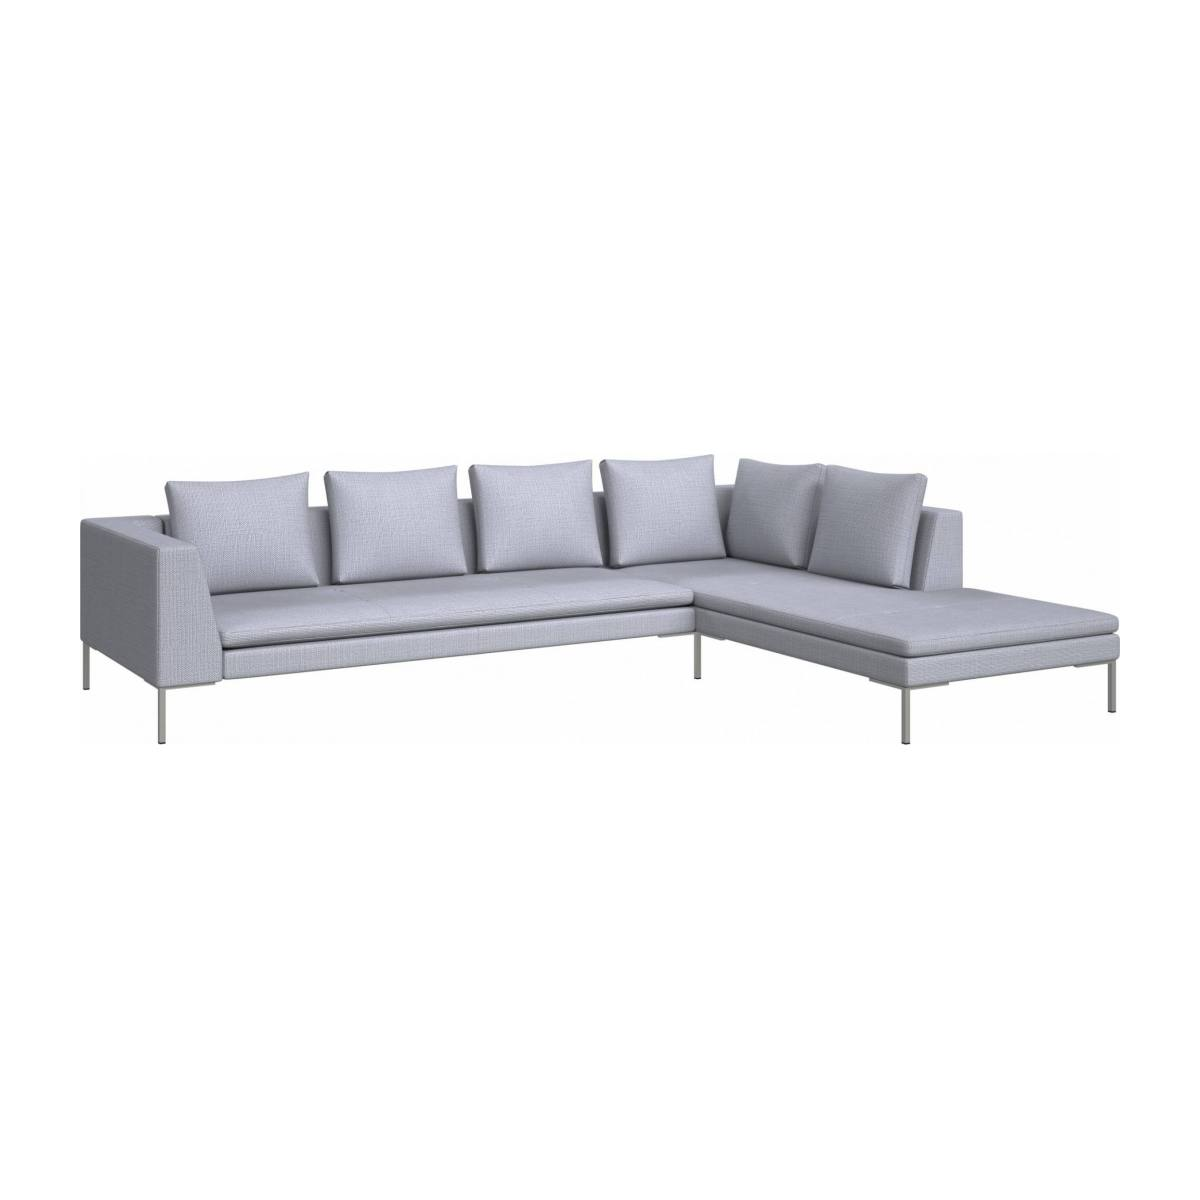 3 seater sofa with chaise longue on the right in Fasoli fabric, grey sky  n°2